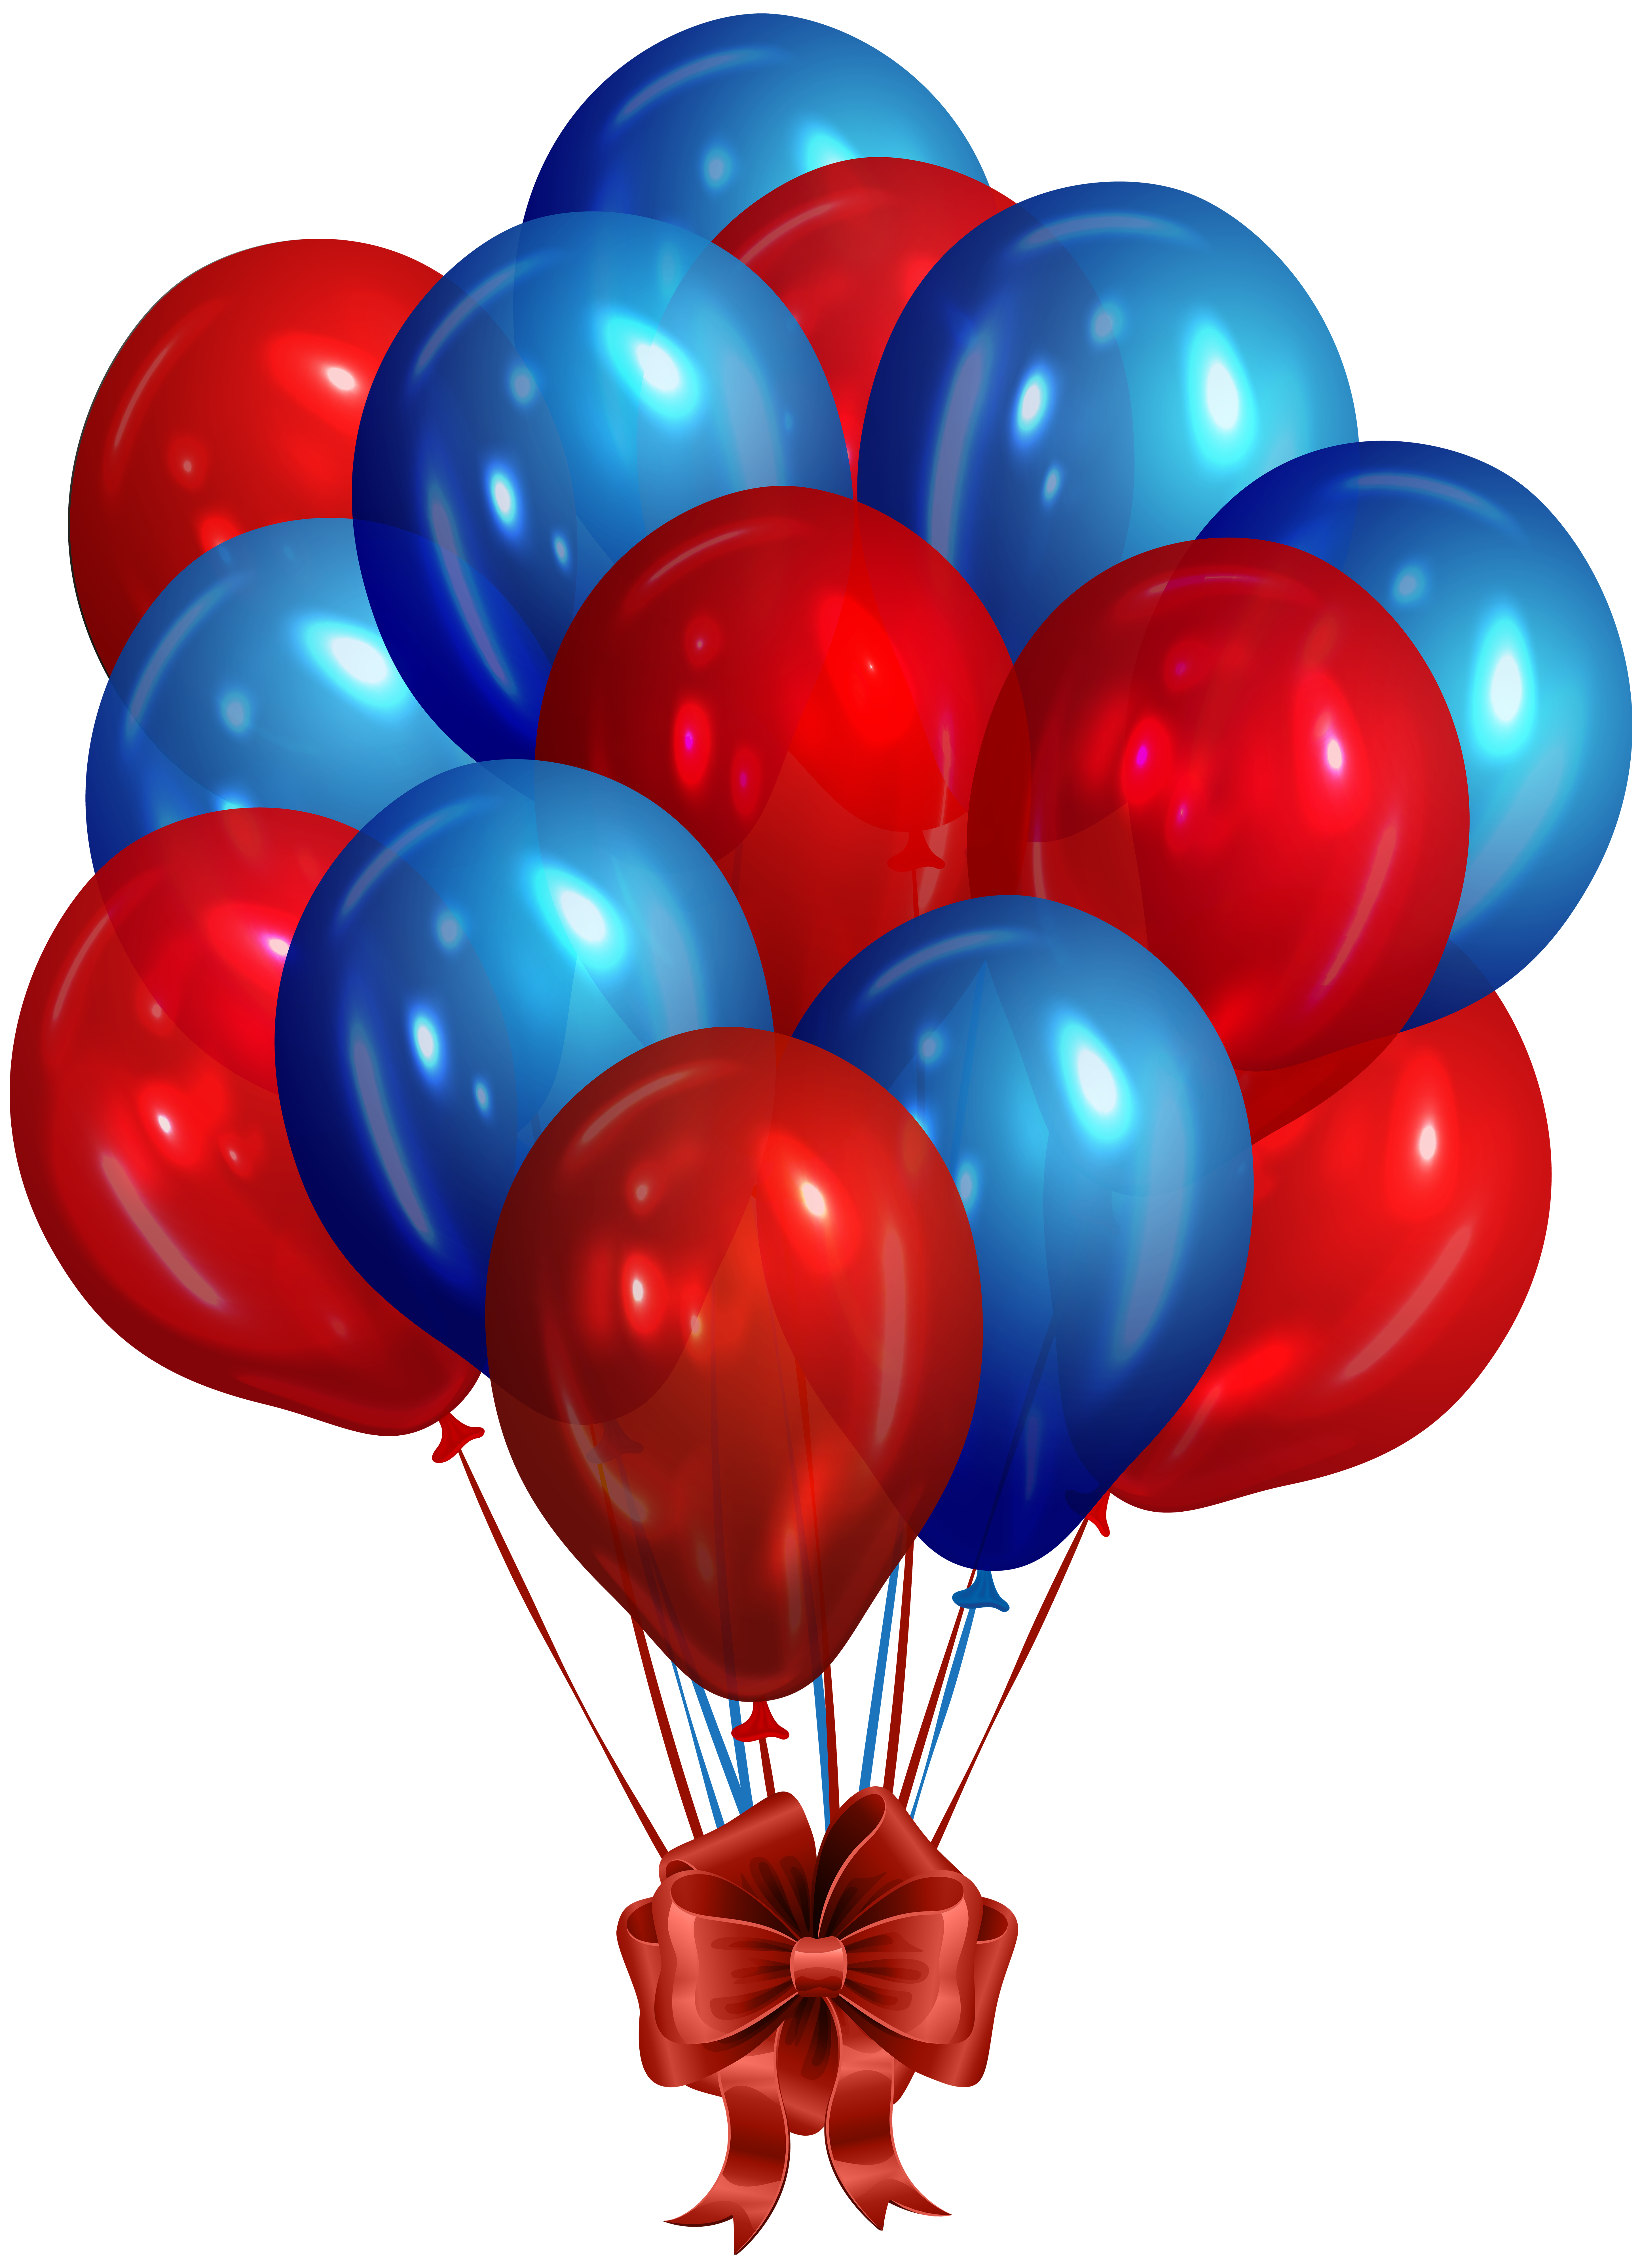 Blue Red Bunch of Balloons Clip Art PNG Image.